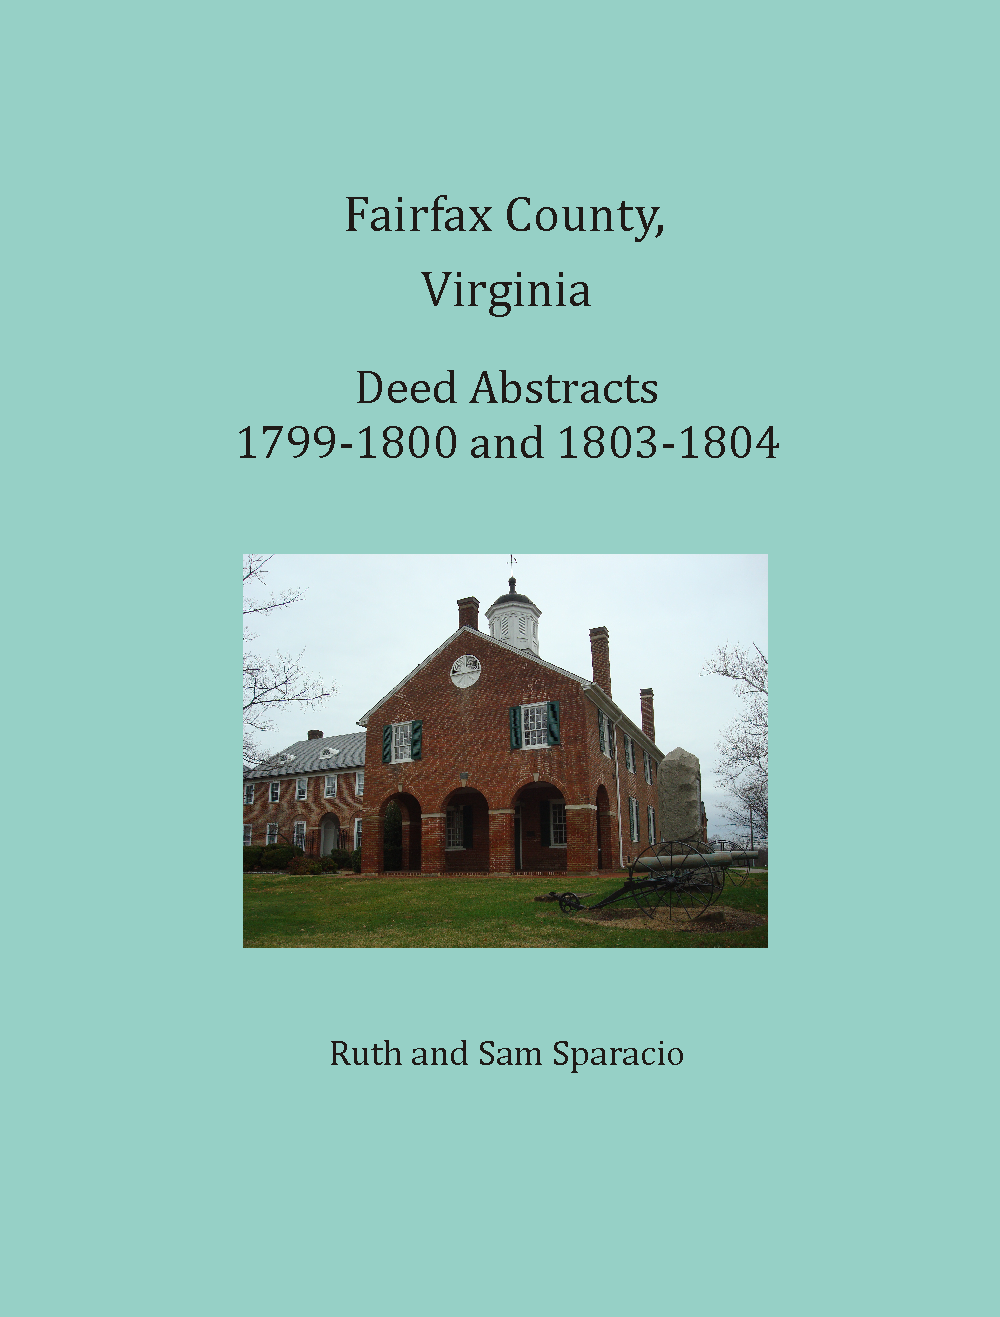 Fairfax County, Virginia Deed Abstracts, 1799-1800 and 1803-1804